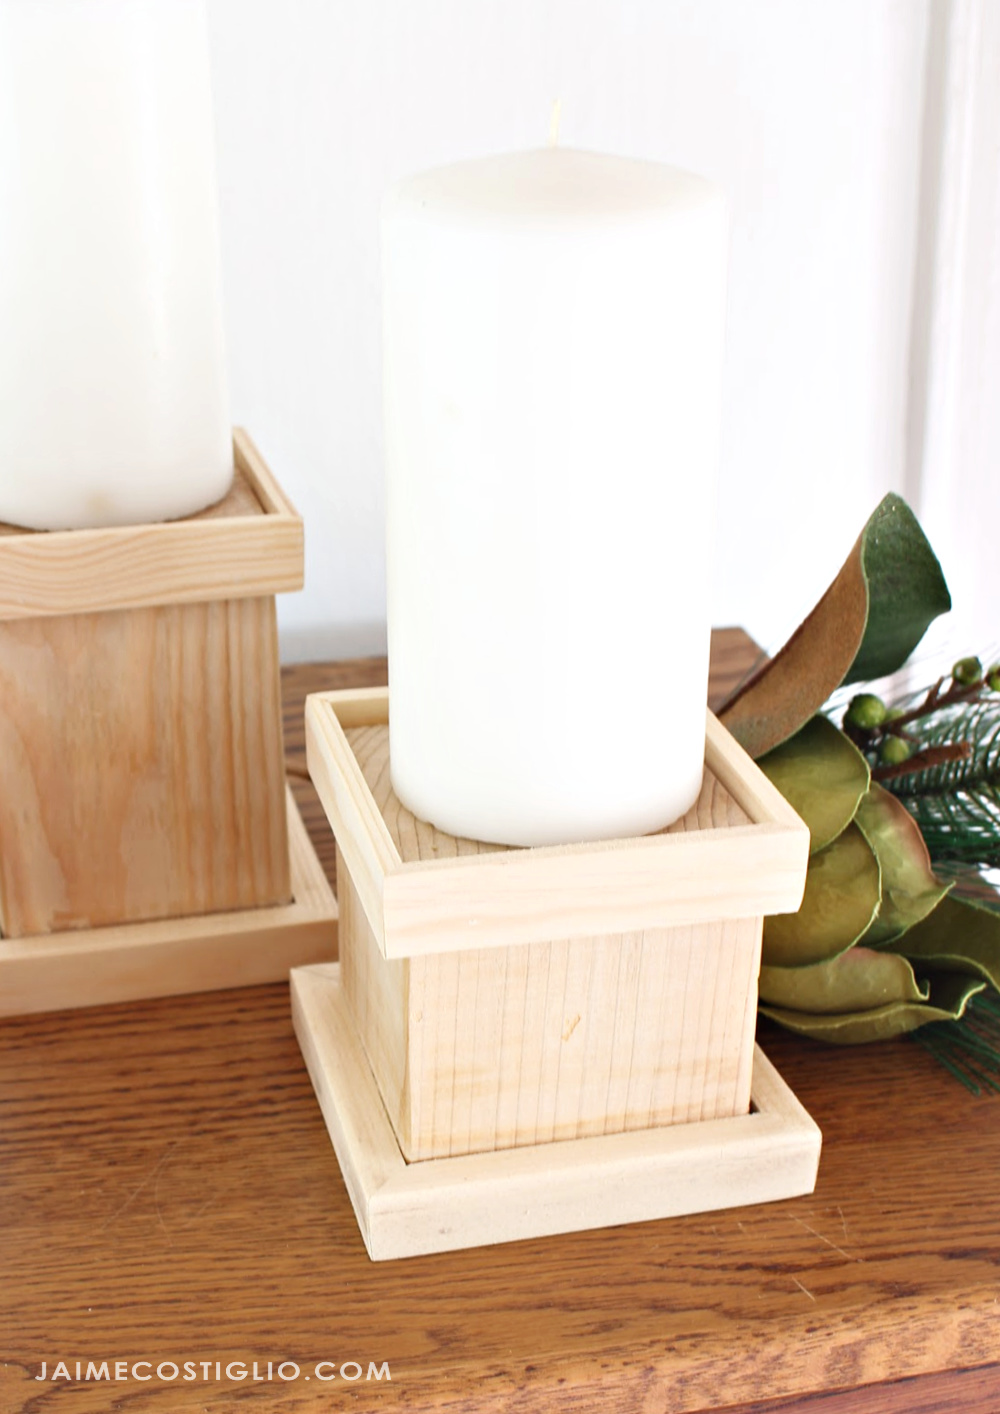 Rustic Wooden Candle Holders Ana White